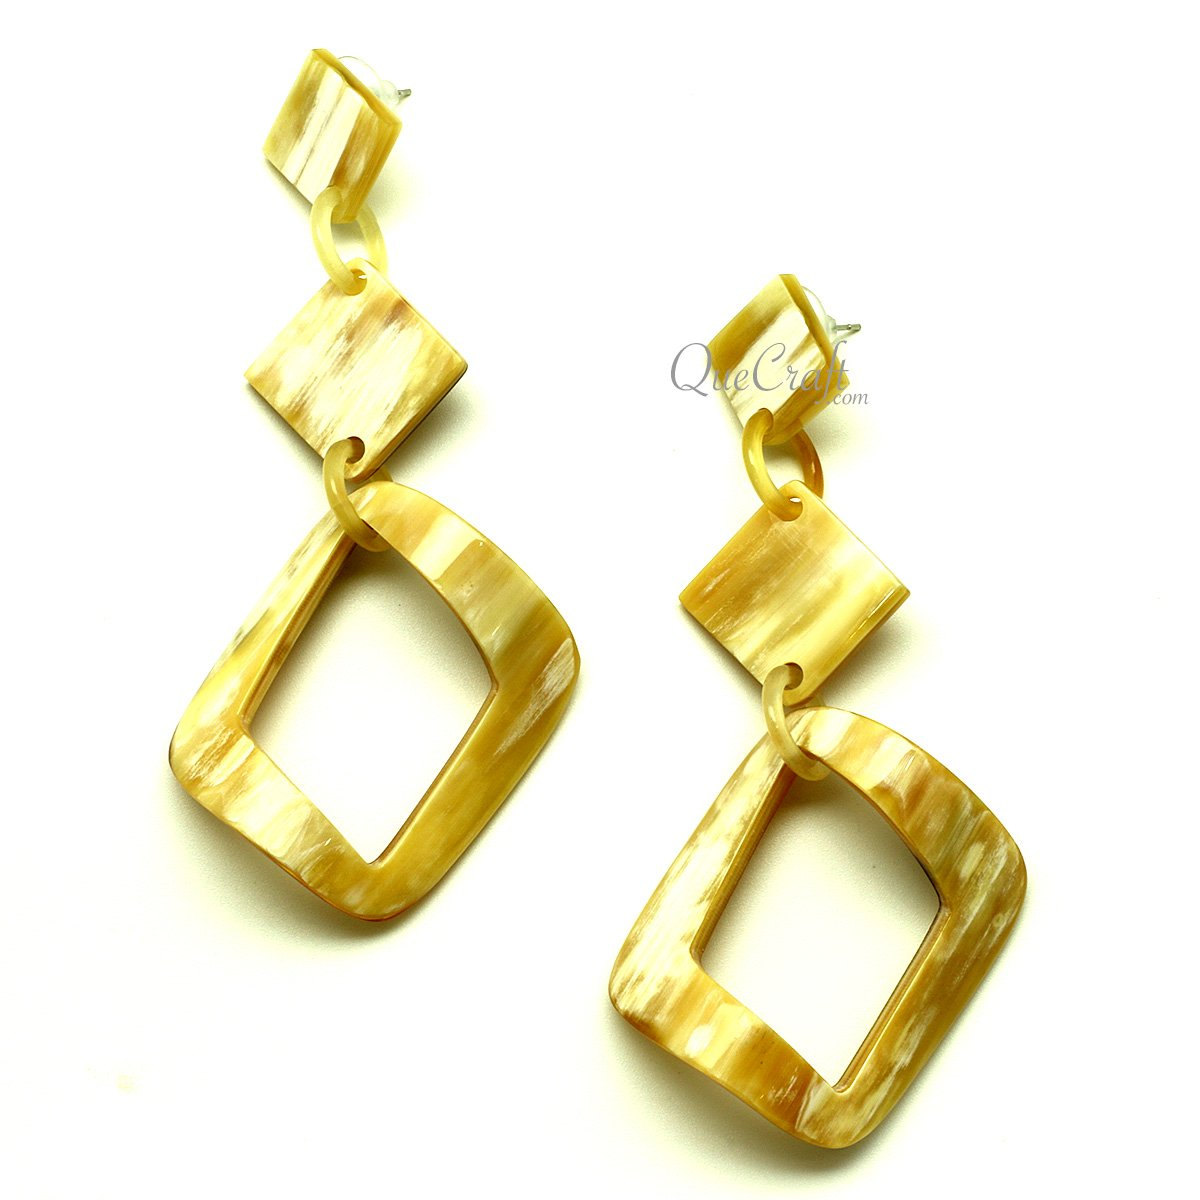 Horn Earrings #13451 - HORN.JEWELRY by QueCraft